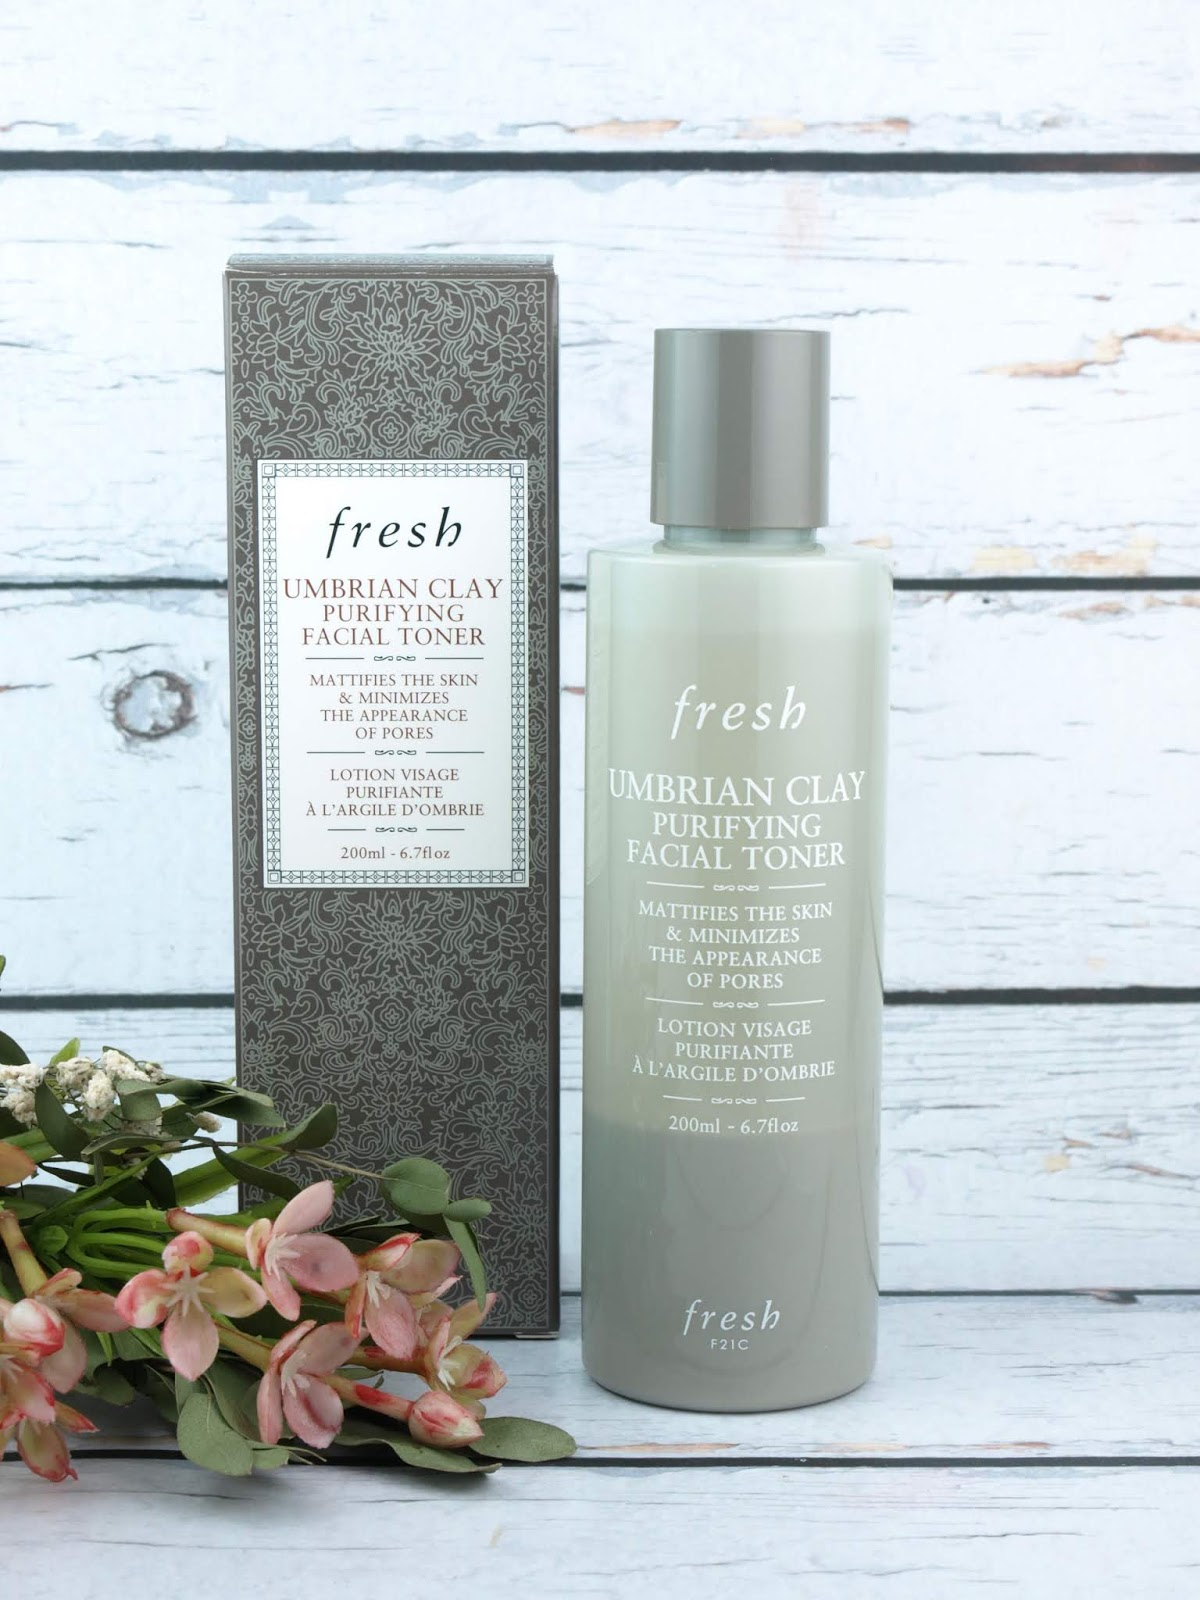 Fresh | Umbrian Clay Purifying Facial Toner: Review